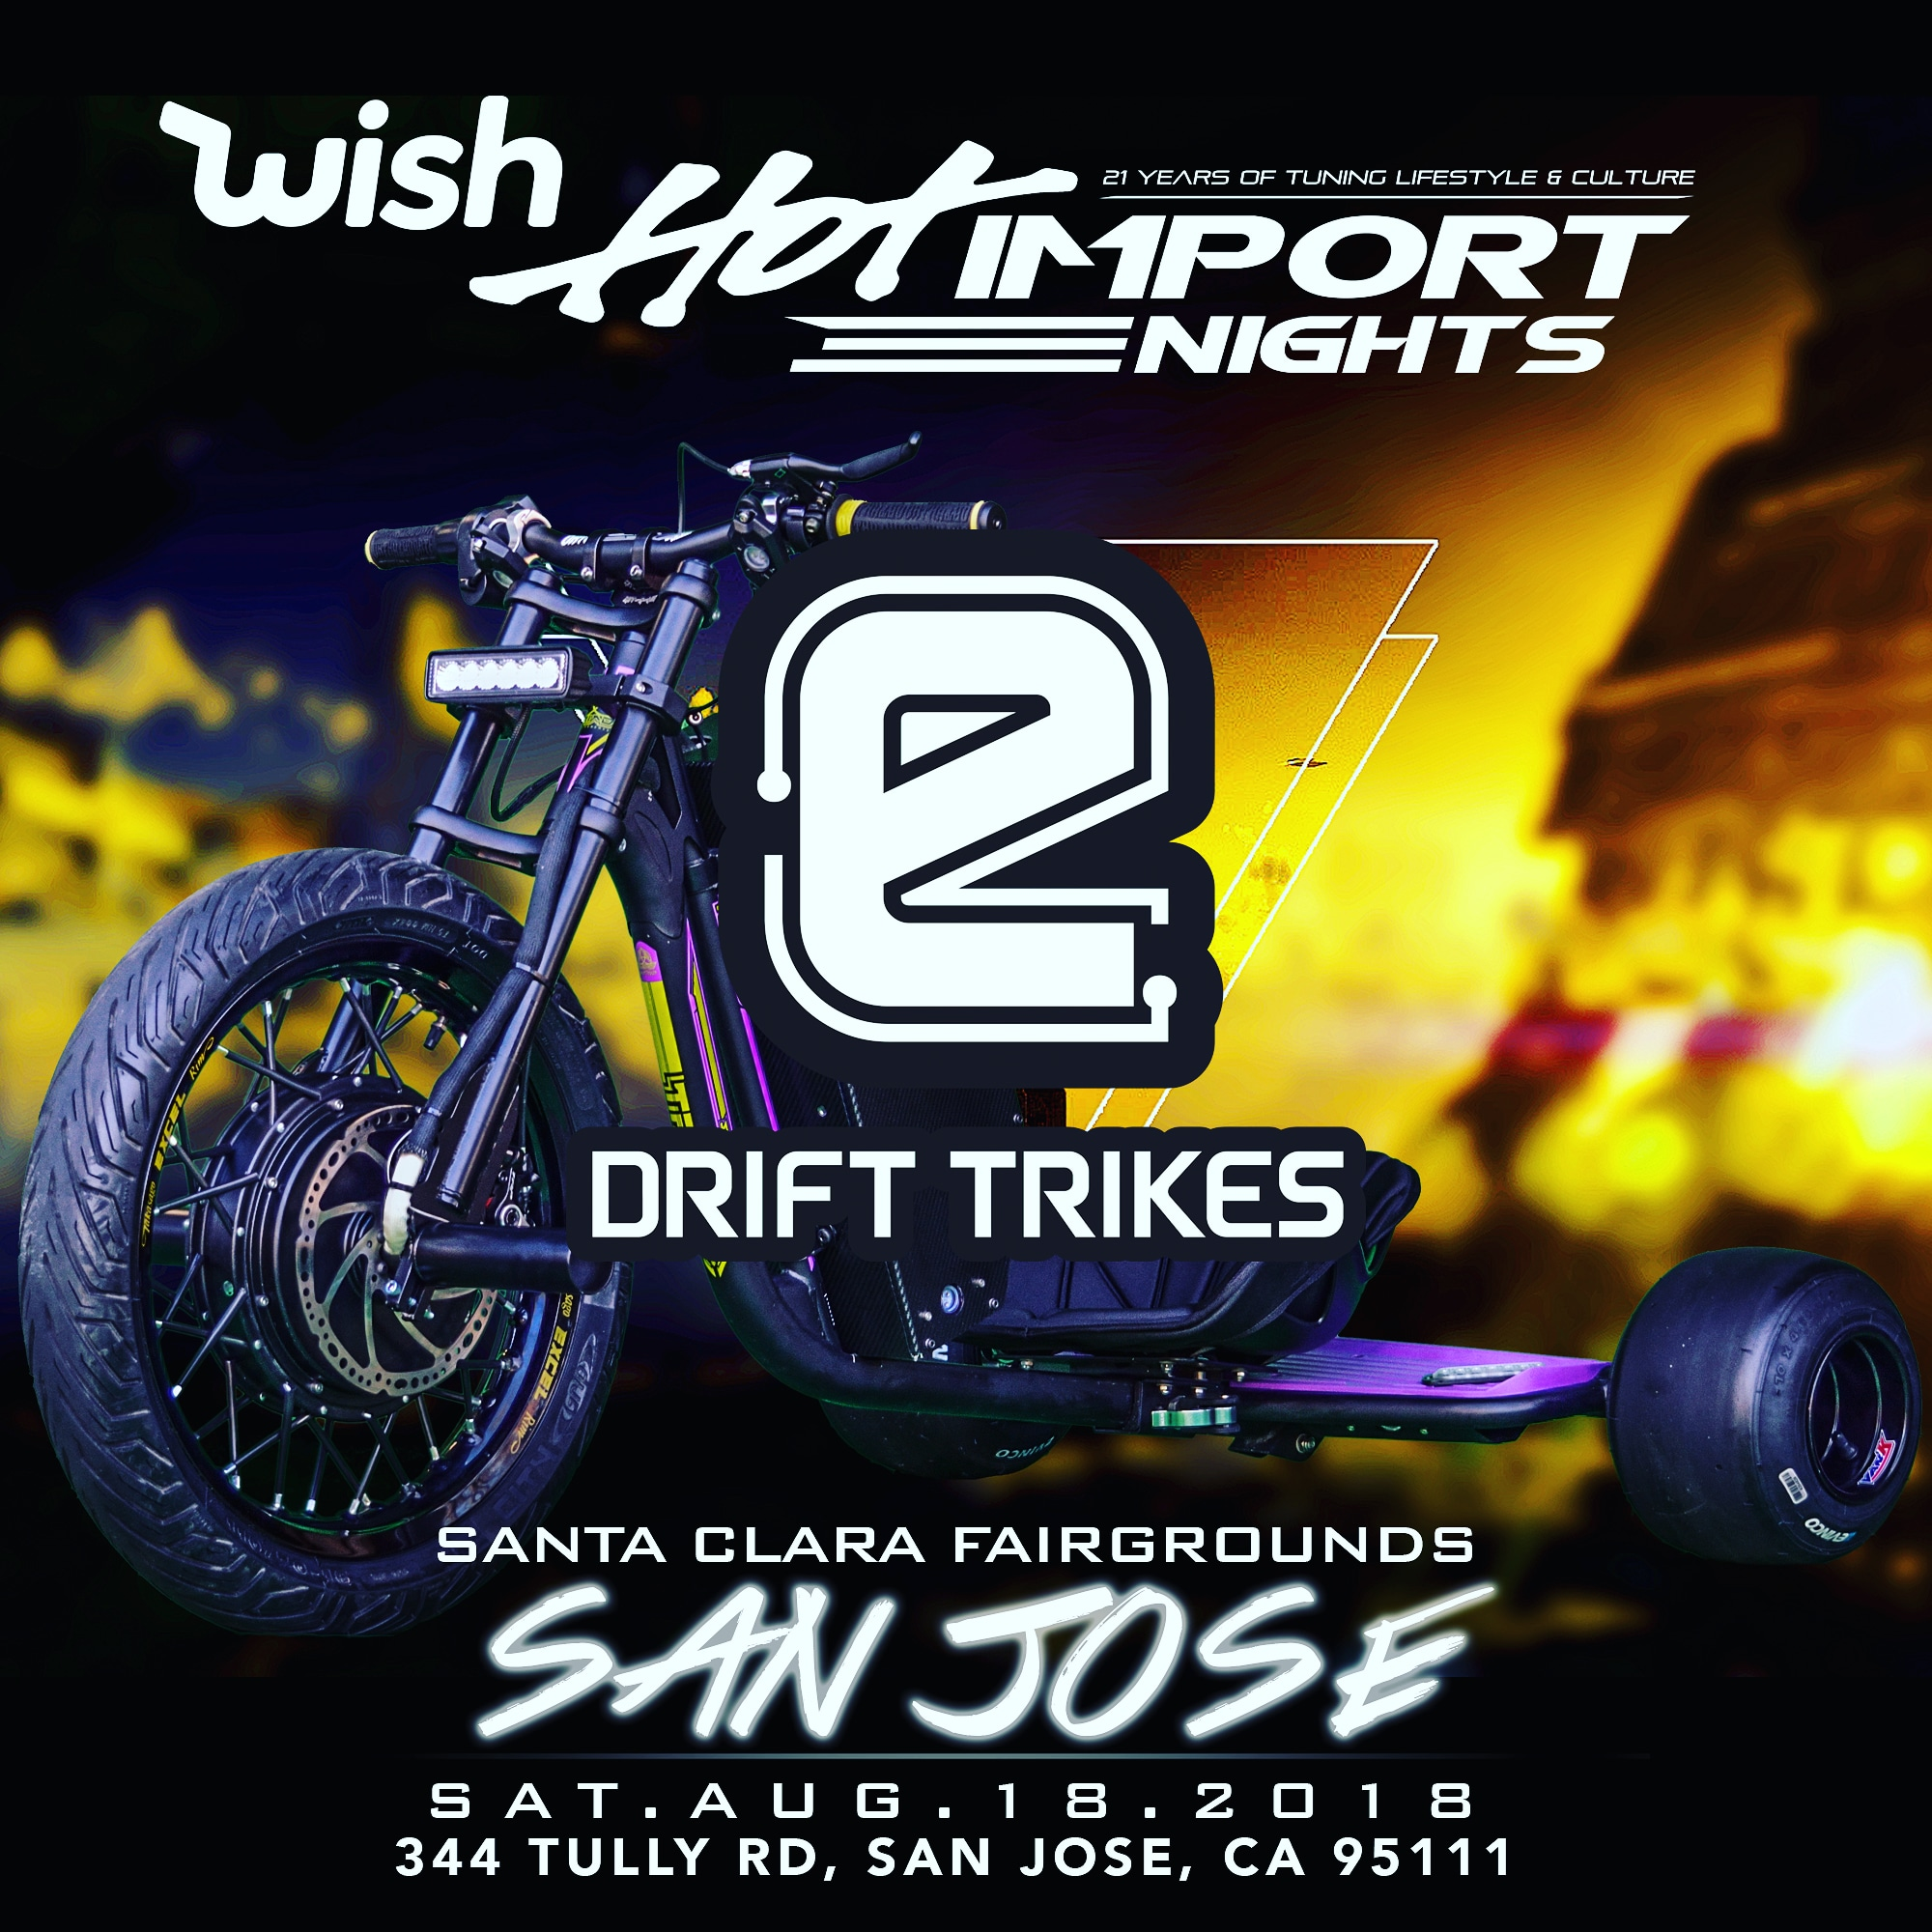 eDriftTrikes at Hot Import Nights San Jose 2018